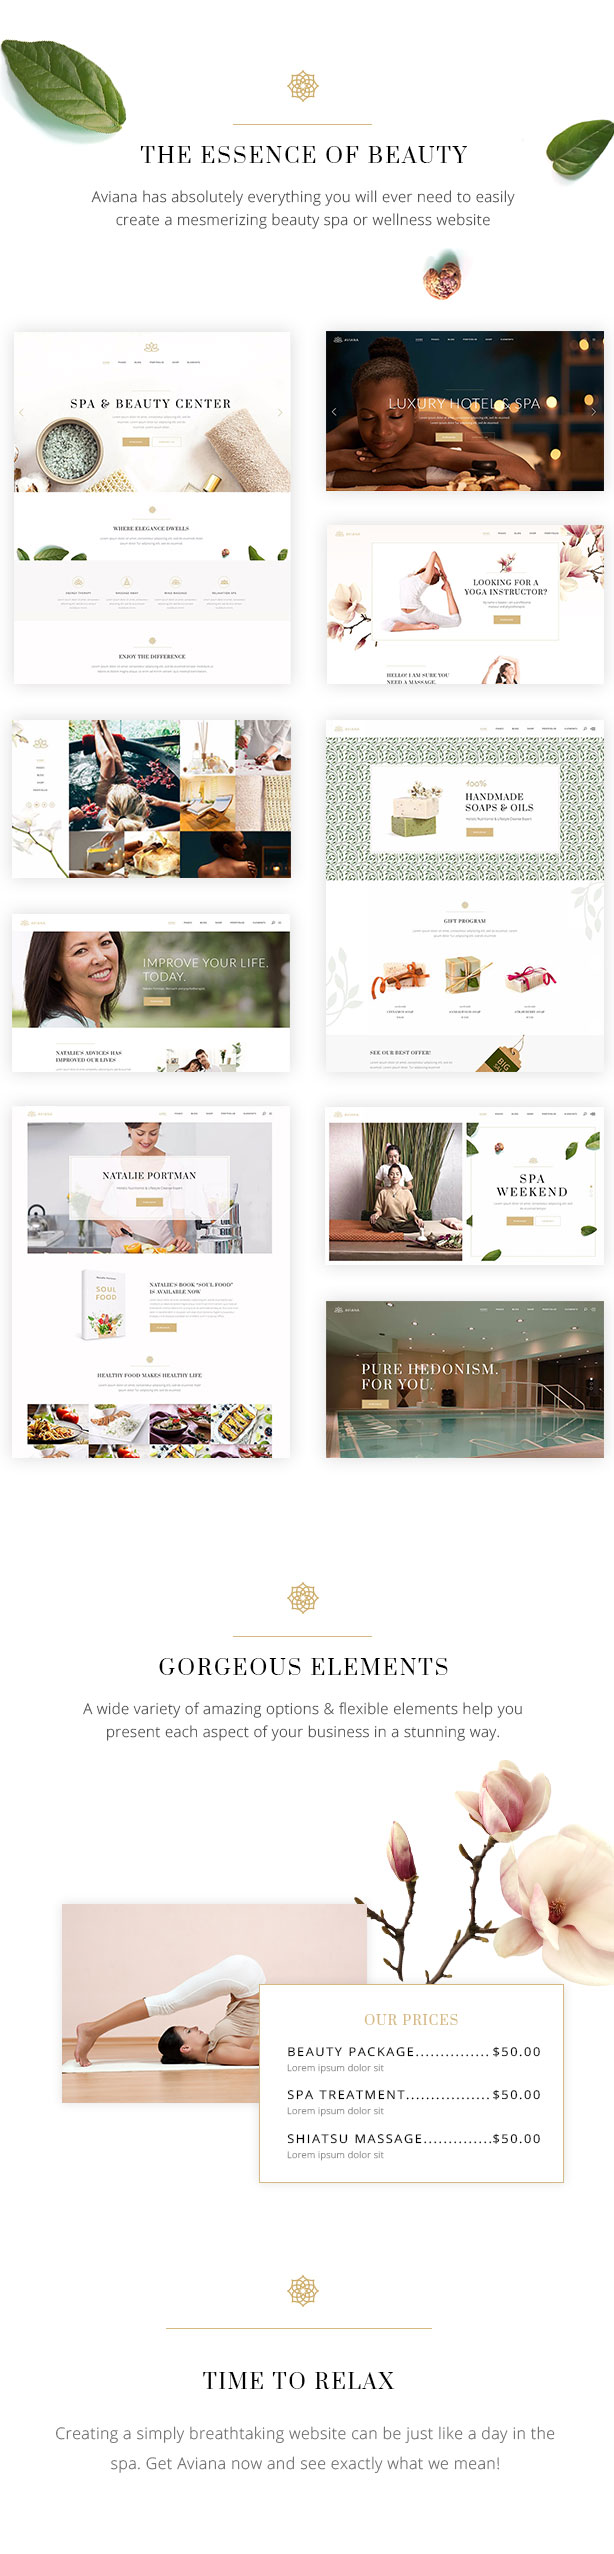 WordPress theme Aviana - An Elegant Lifestyle and Wellness Theme (Health & Beauty)